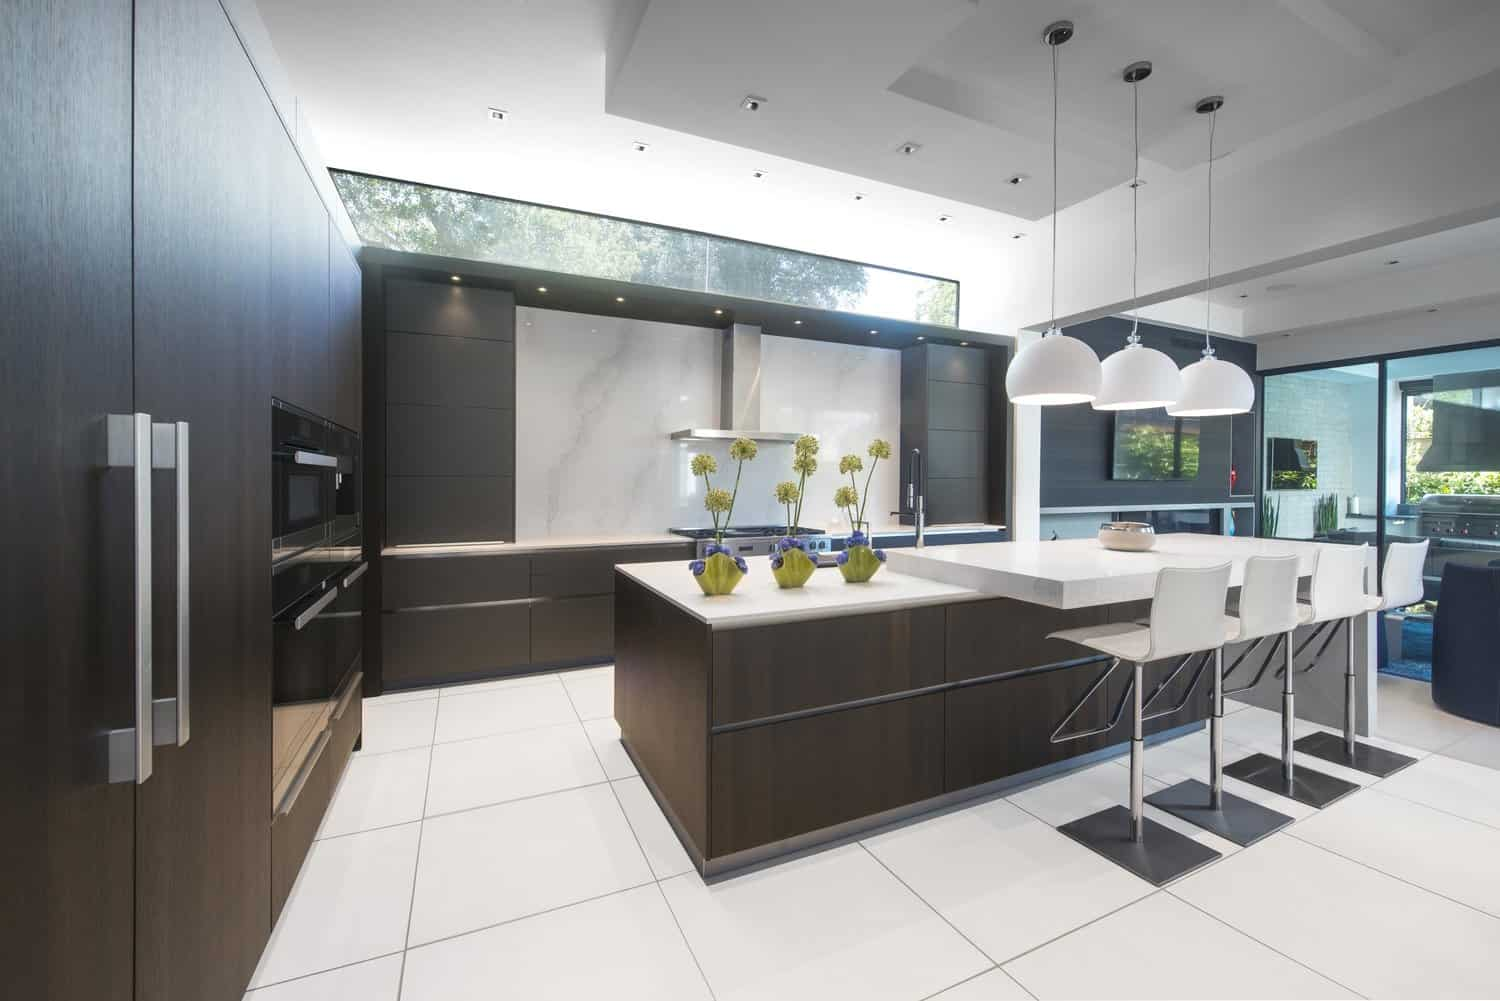 eggersmann kitchen designed for a modern tanglewood area home